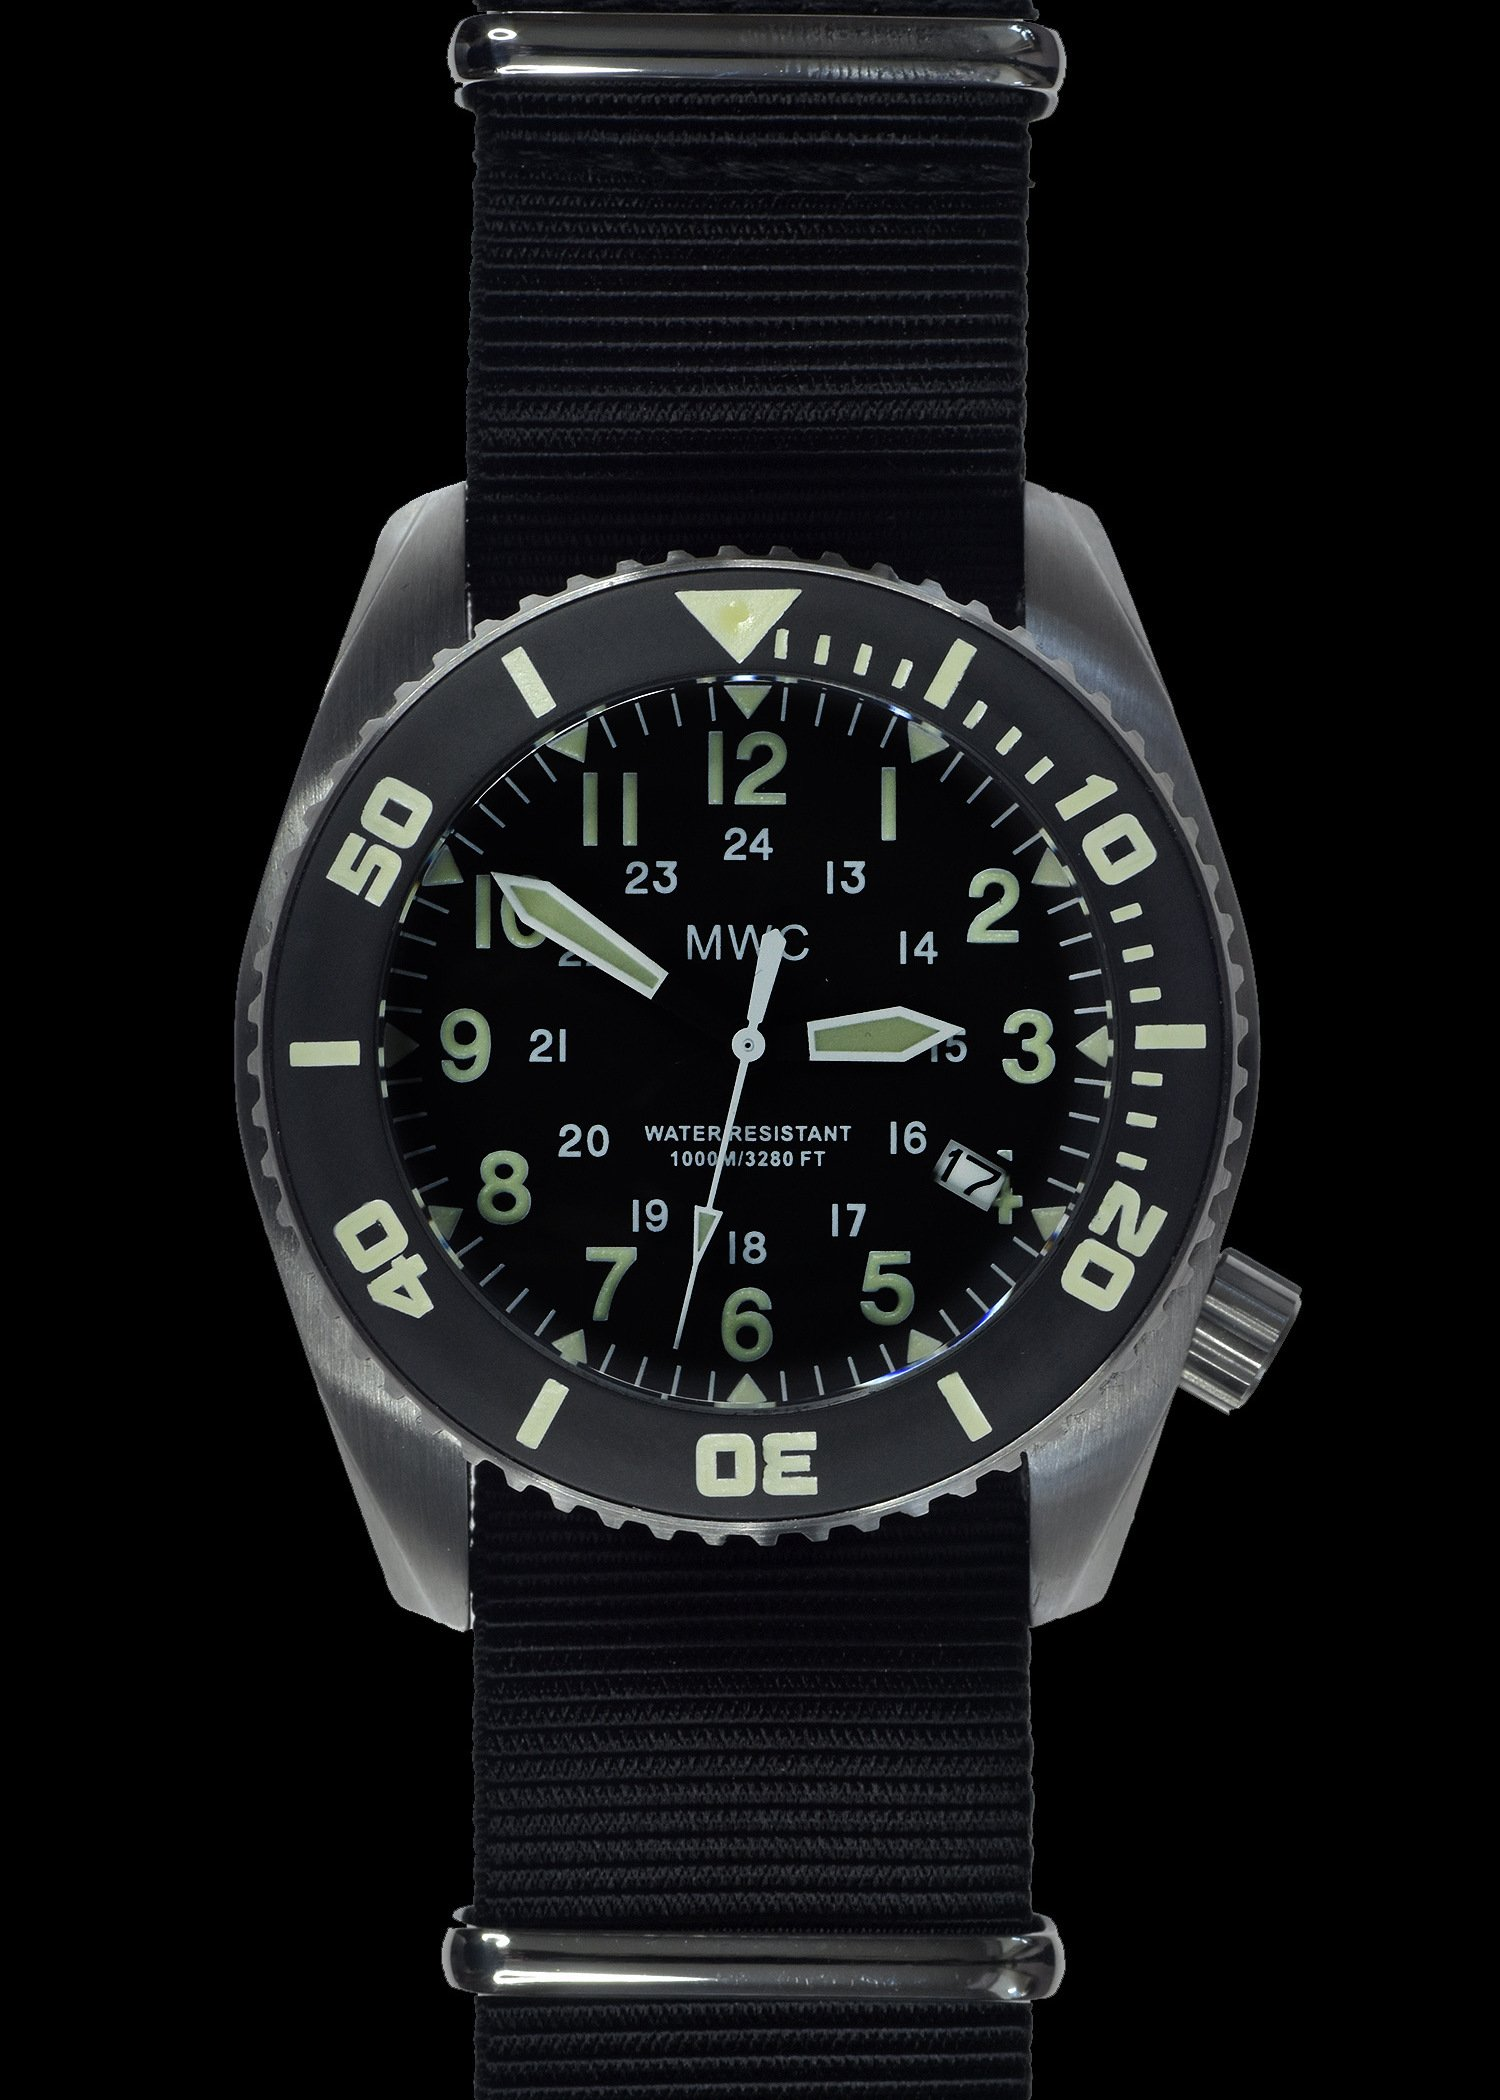 Водолазен часовник DEPTHMASTER Quartz 1000m / 100atm Military Divers Helium - MWC